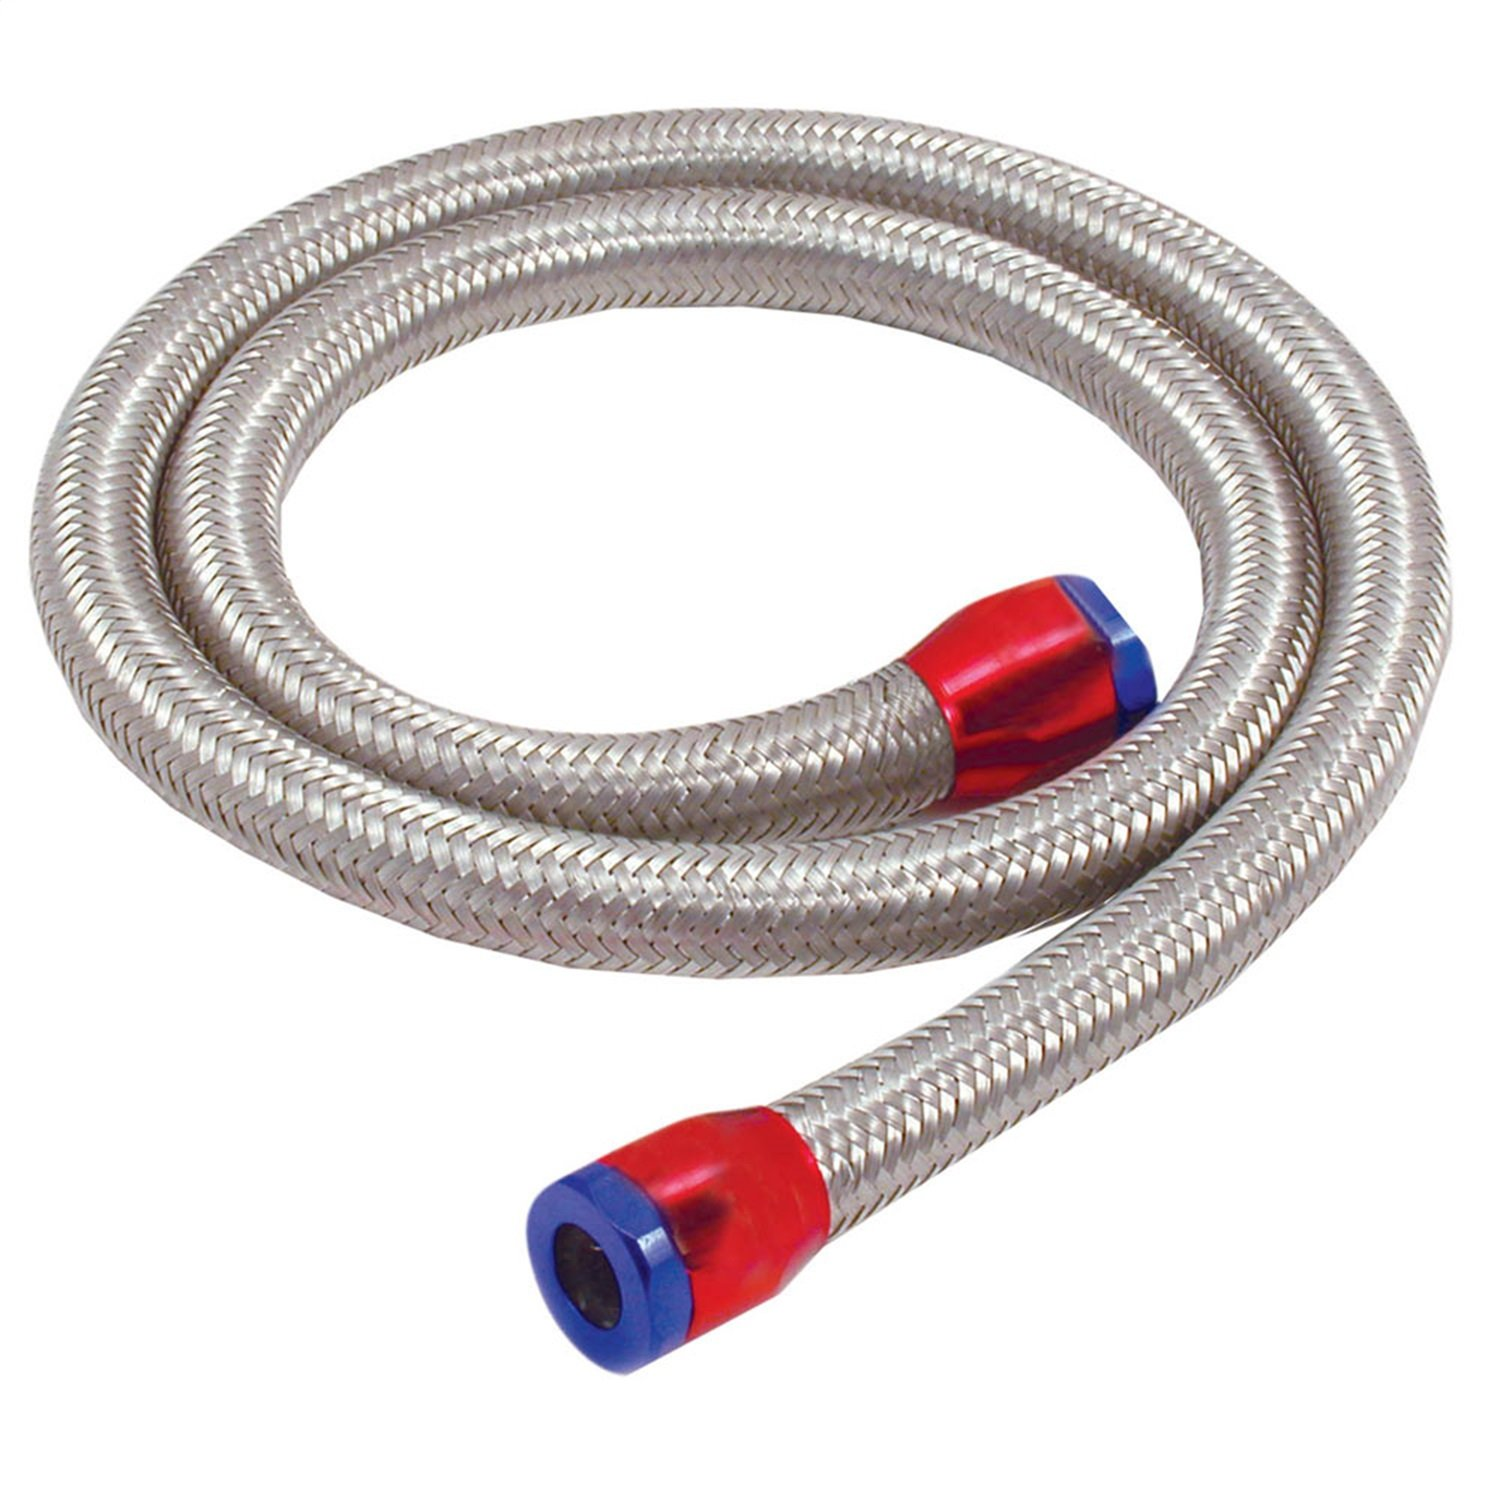 Spectre Performance (29390) 5/16'' x 3' Stainless Steel Fuel Line Kit with Clamps